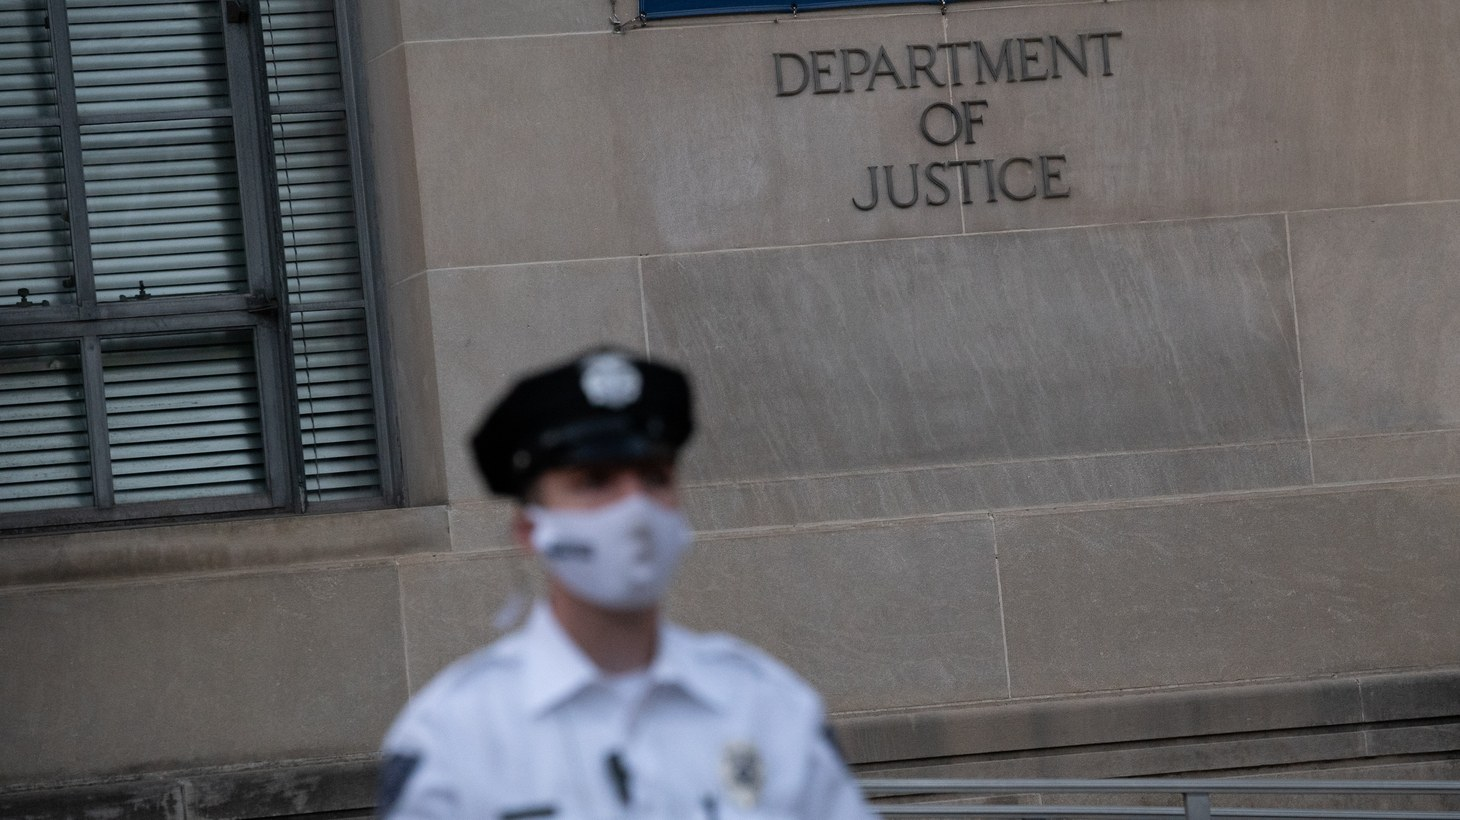 A general view of the U.S. Department of Justice, in Washington, D.C., on Tuesday, June 15, 2021. Recent news reports have revealed a growing scandal at the Trump Administration Justice Department, that carried into the early Biden Administration, where journalists and Members of Congress had their email records subpoenaed in leak investigations in acts of apparent political retribution.